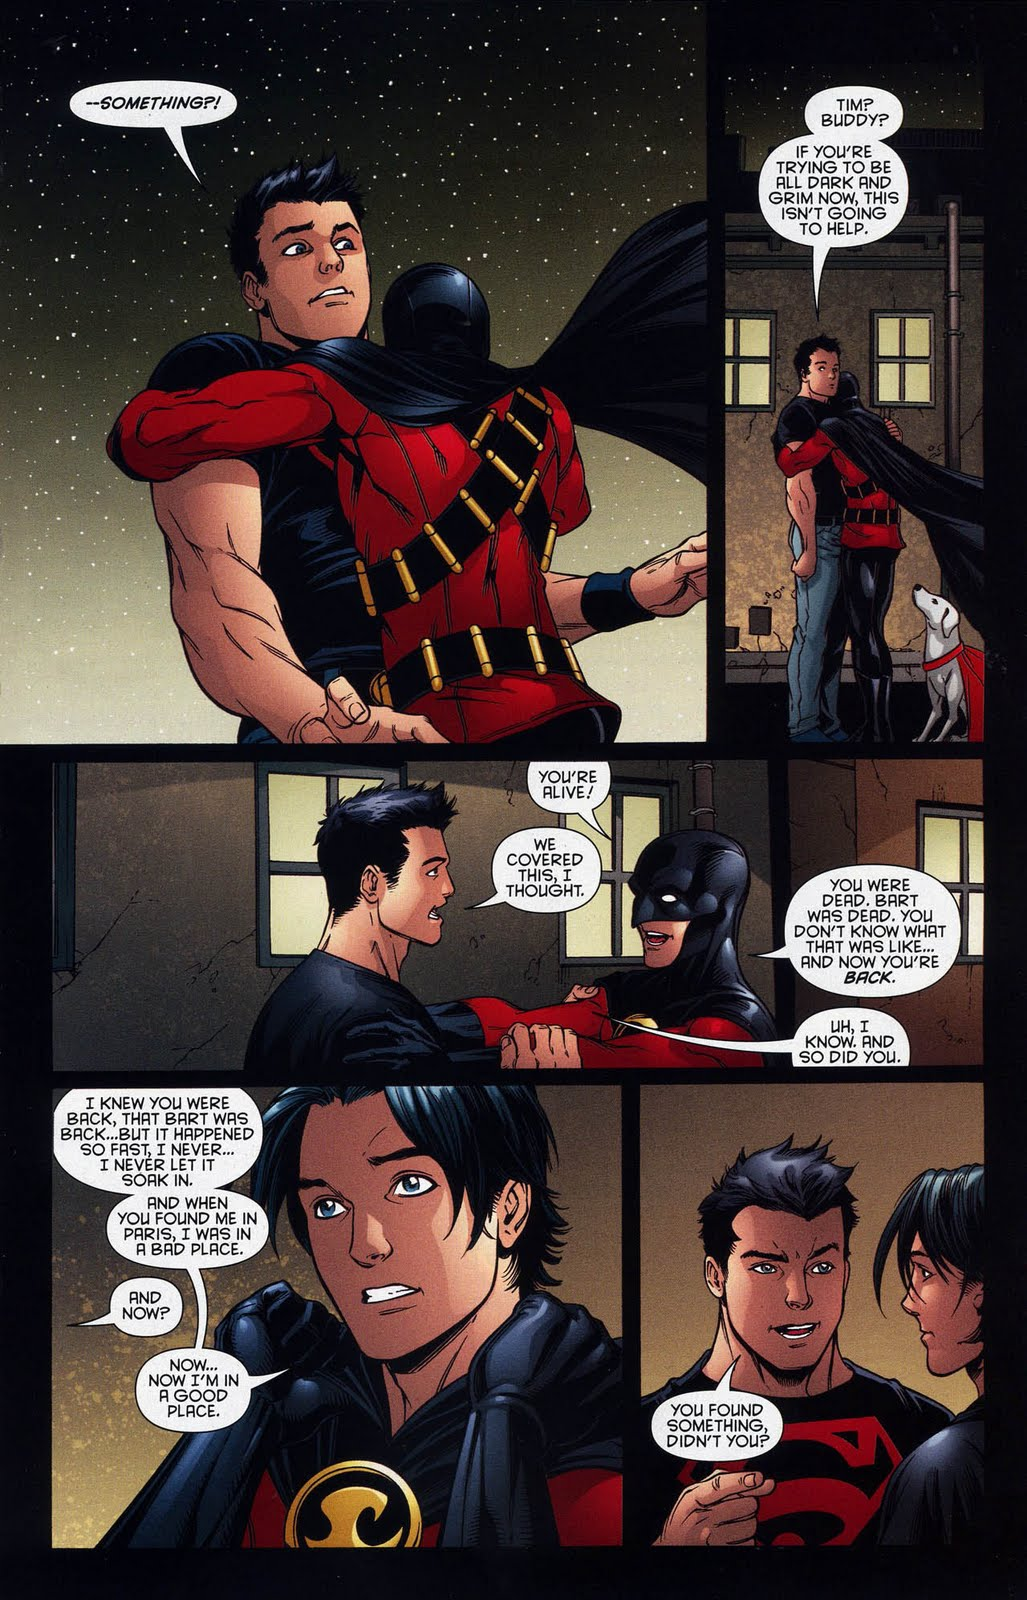 Superboy Robin Slash http://eyzmaster.blogspot.com/2010/07/comicpageoftheweekend-red-robin-and.html